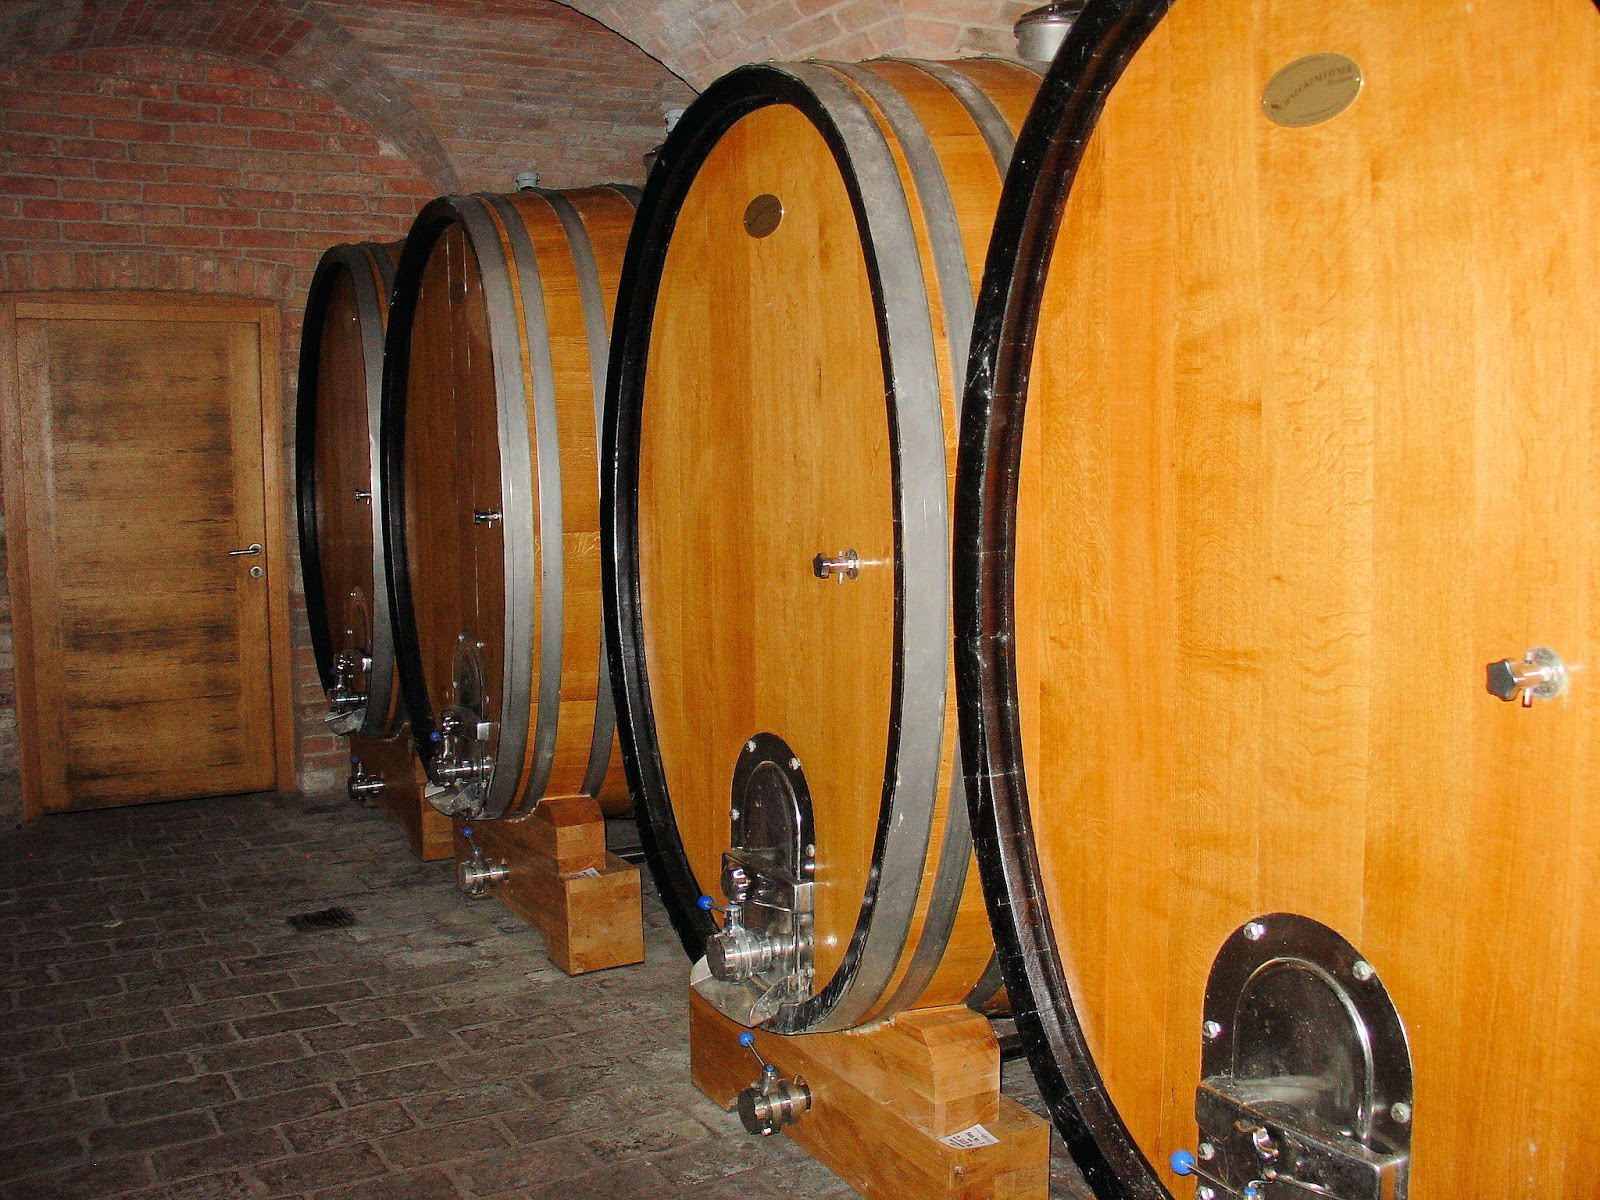 A harmonious blend of contrasting materials in this view of wine barrels at the Winzer Krems Winery in Dürnstein.